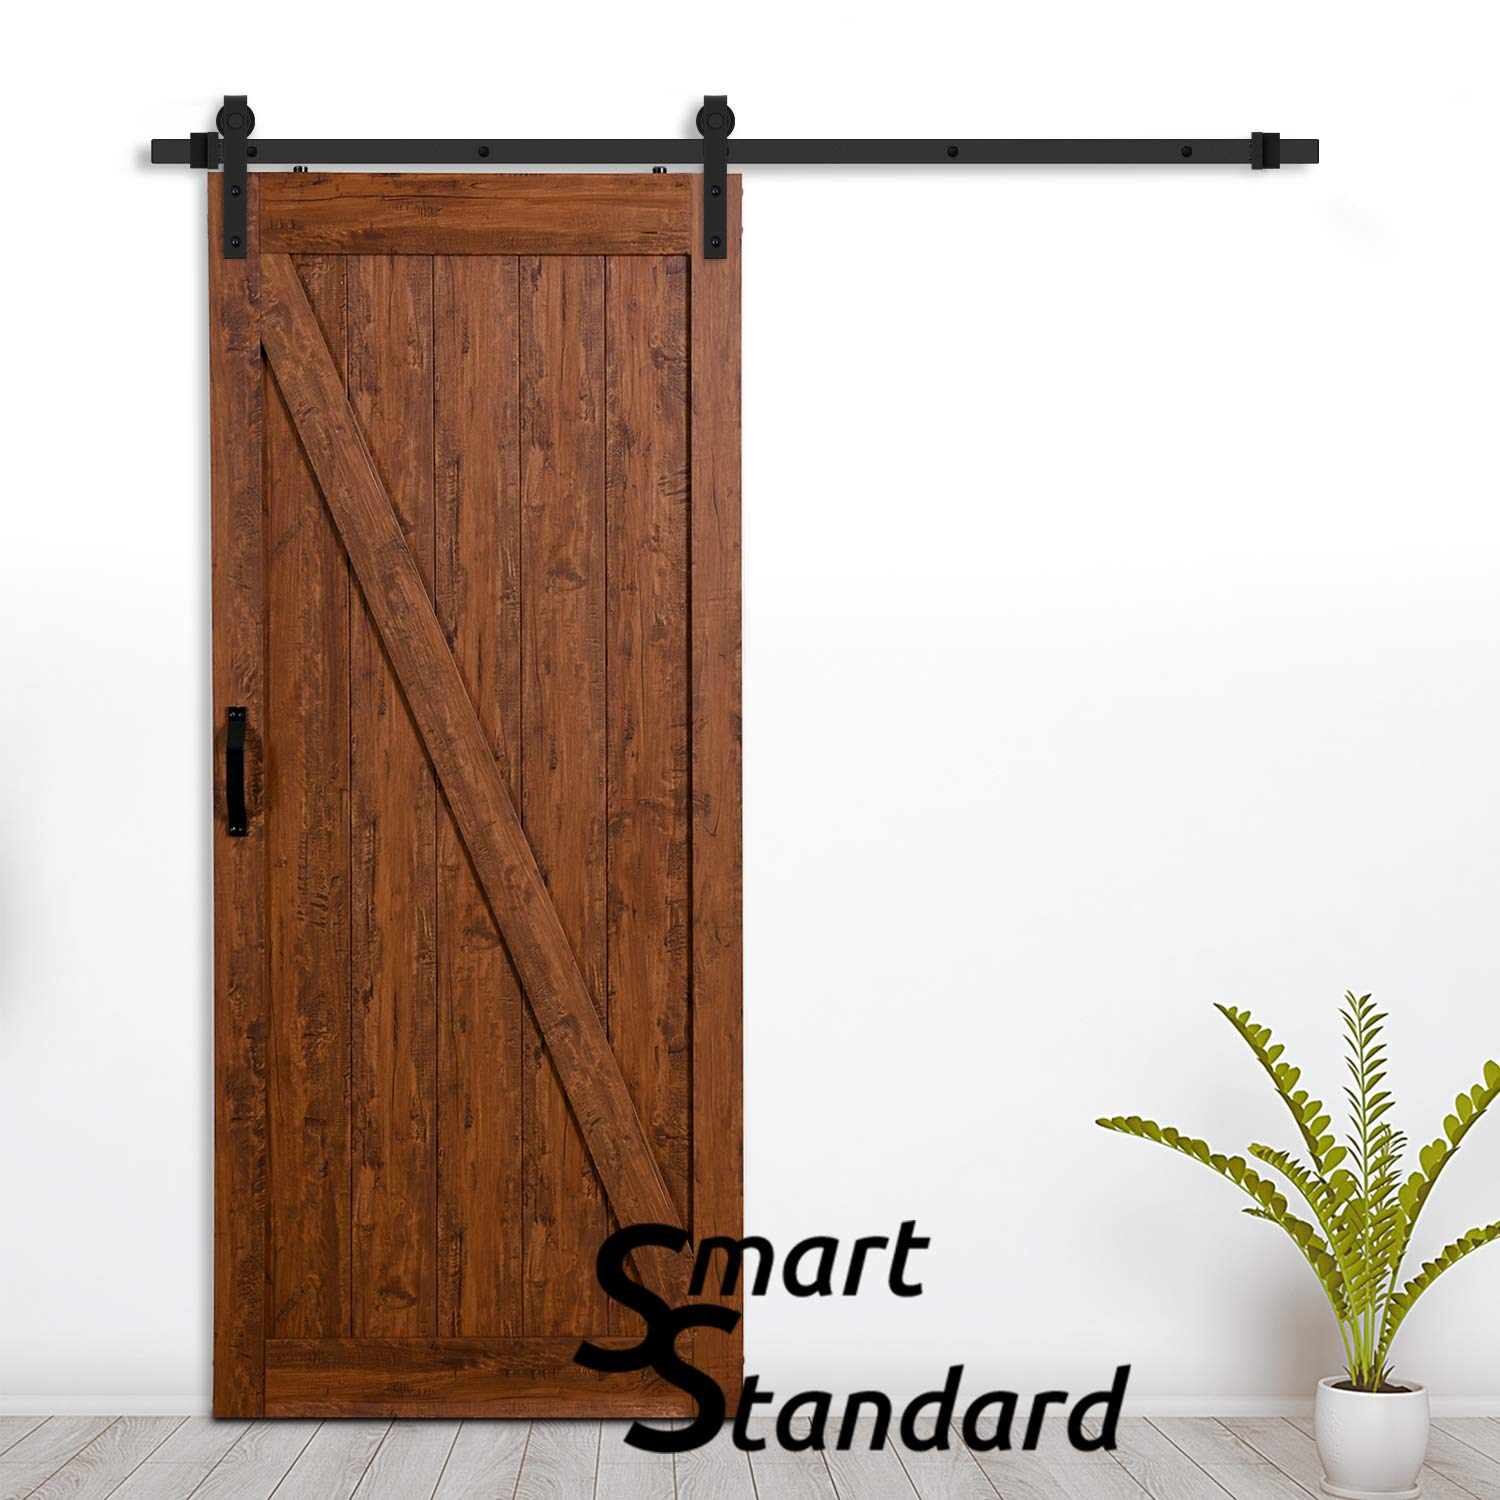 SMARTSTANDARD 36in x 84in Sliding Barn Door with 6.6ft BarnDoor Hardware Kit & Handle, Pre-Drilled Ready to Assemble Wood Slab Covered with Water-Proof PVC Surface (Antique Z-Frame Panel),